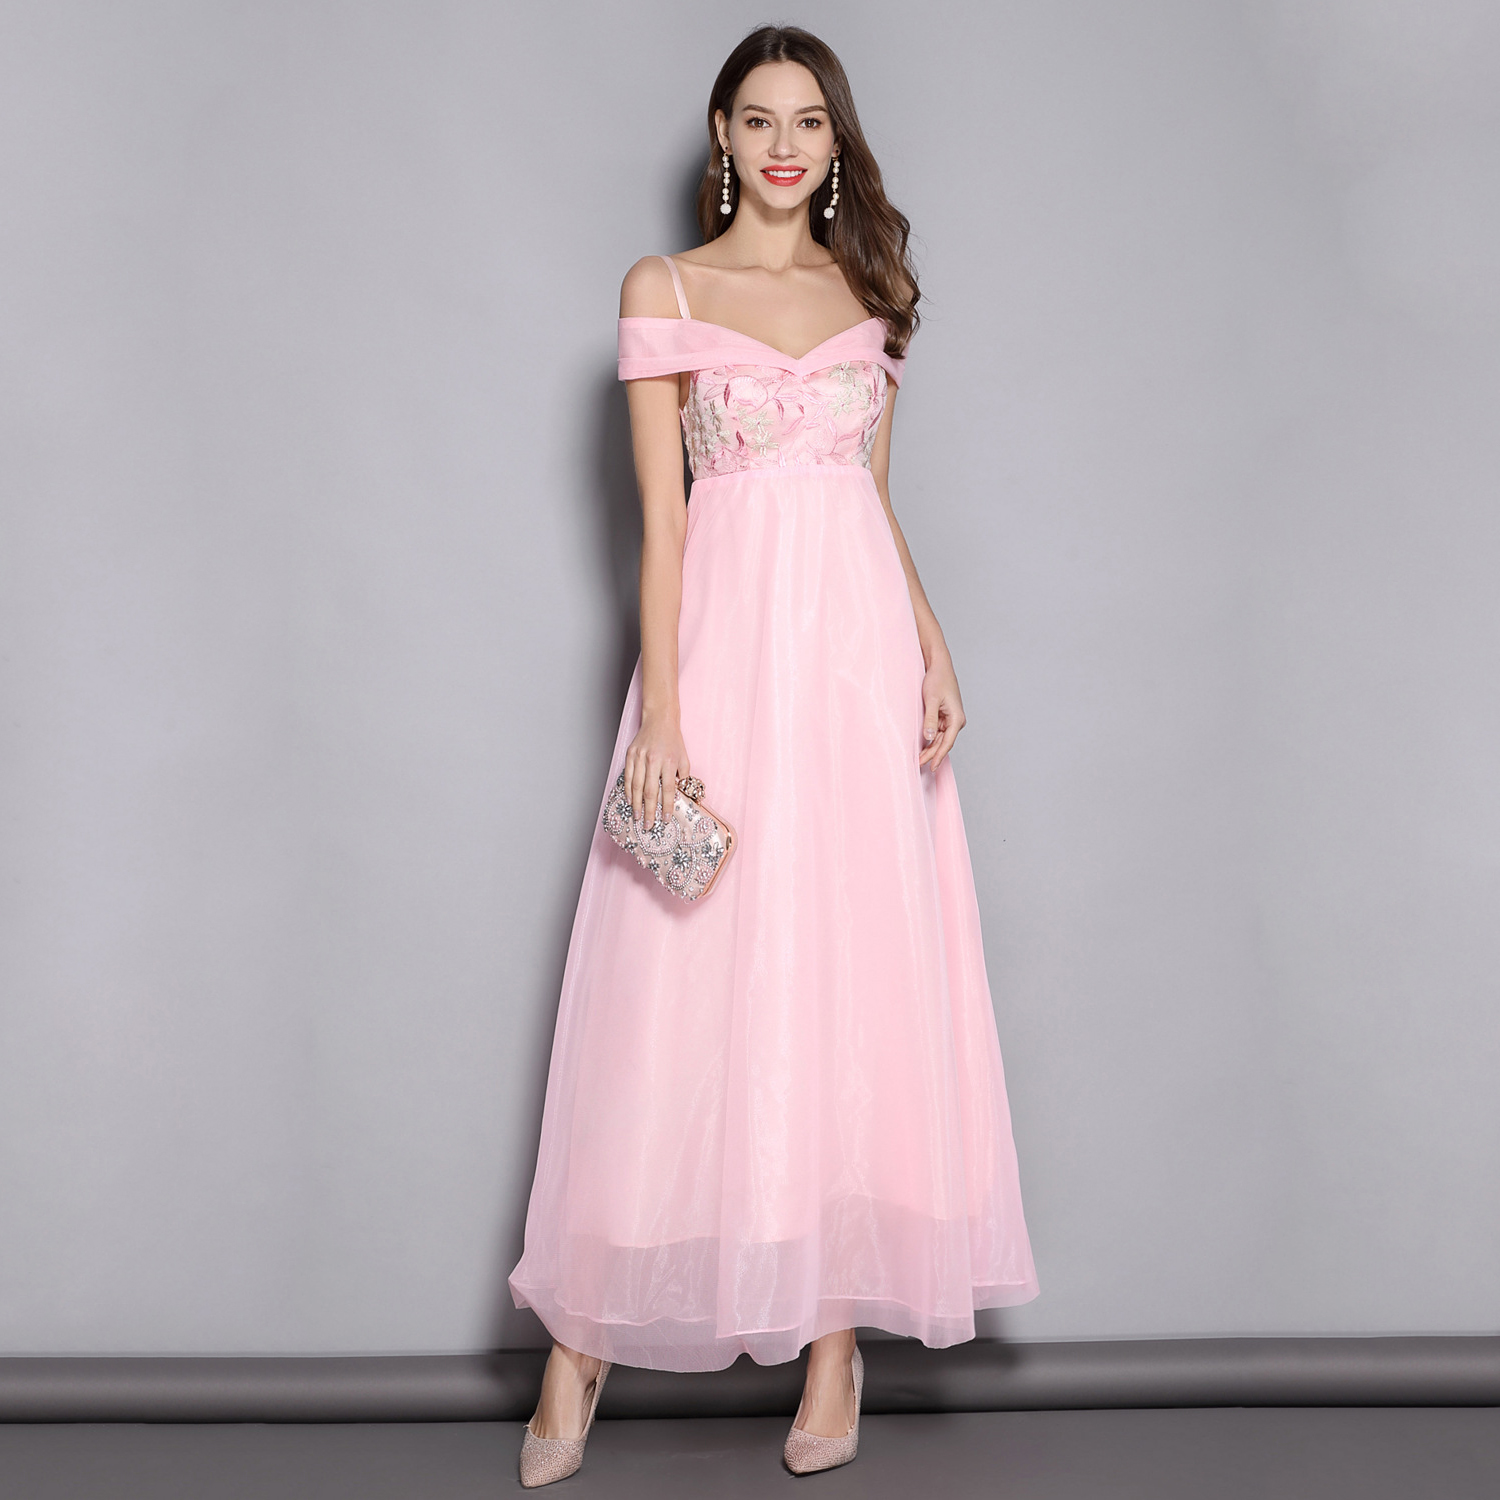 Pink Robe Demoiselle D'honneur Fille Elegant A Line   Bridesmaid     Dresses   Embroidery Lace Long Prom Gown Wedding Formal   Dress